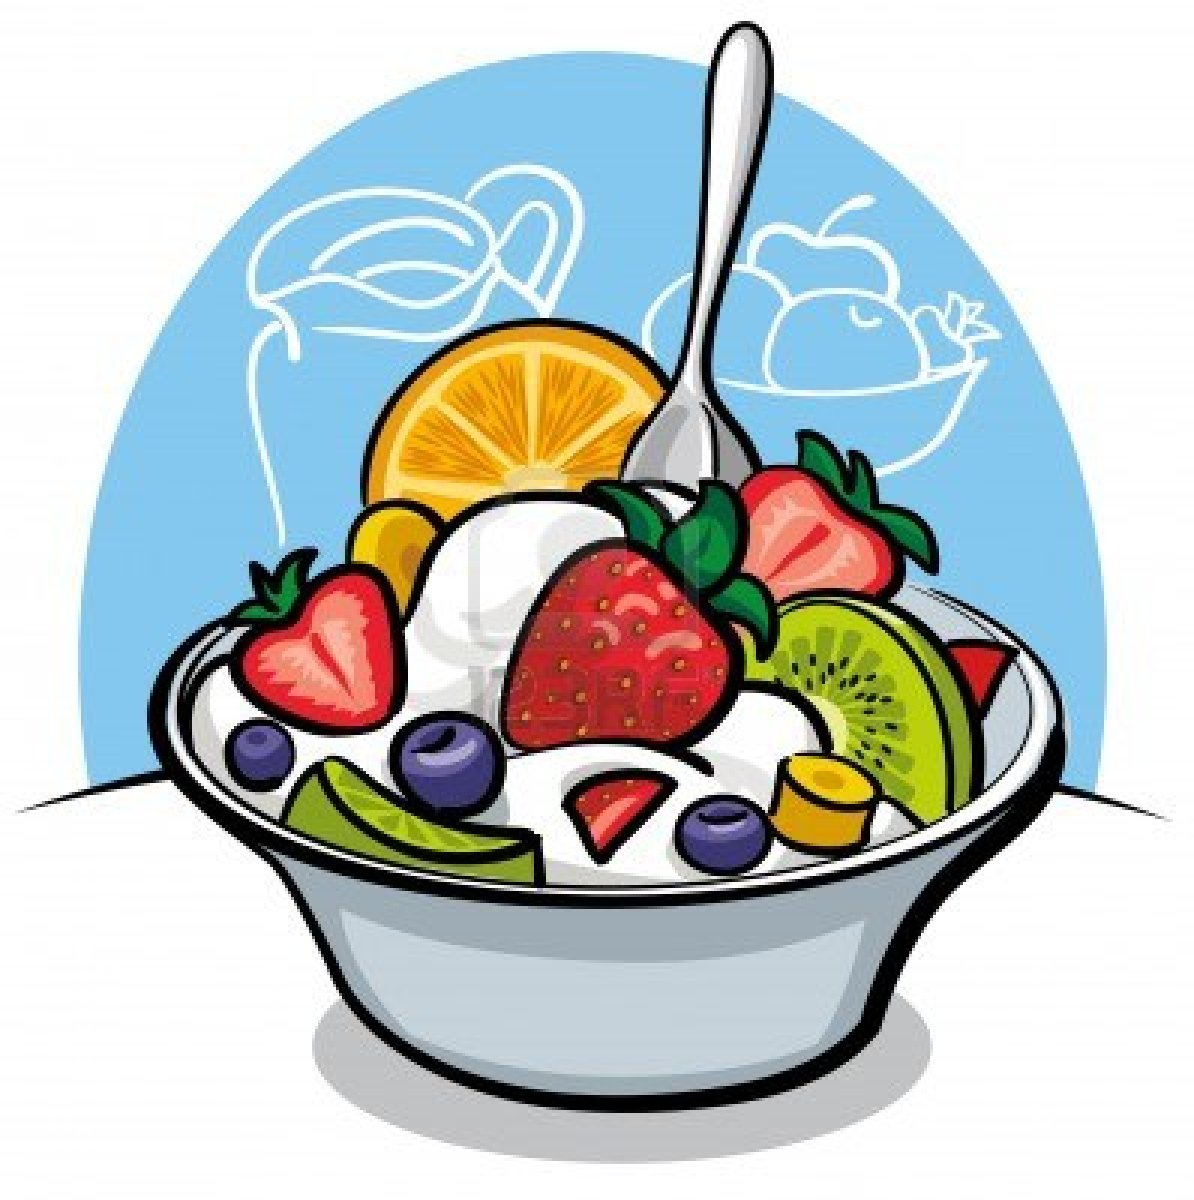 hight resolution of 1194x1200 salad bowl clipart clipart panda